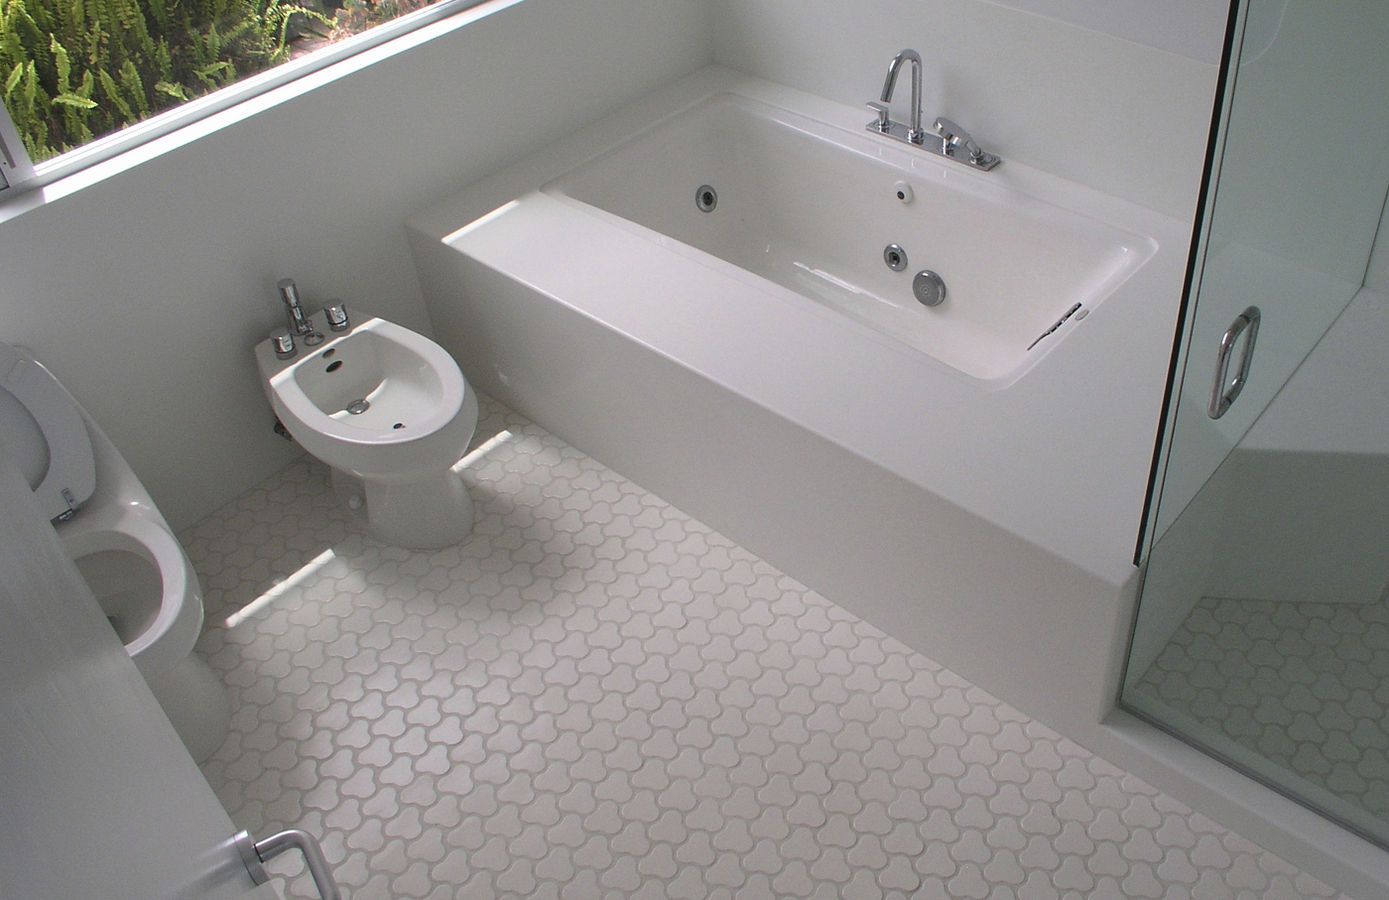 25 wonderful ideas and pictures of decorative bathroom